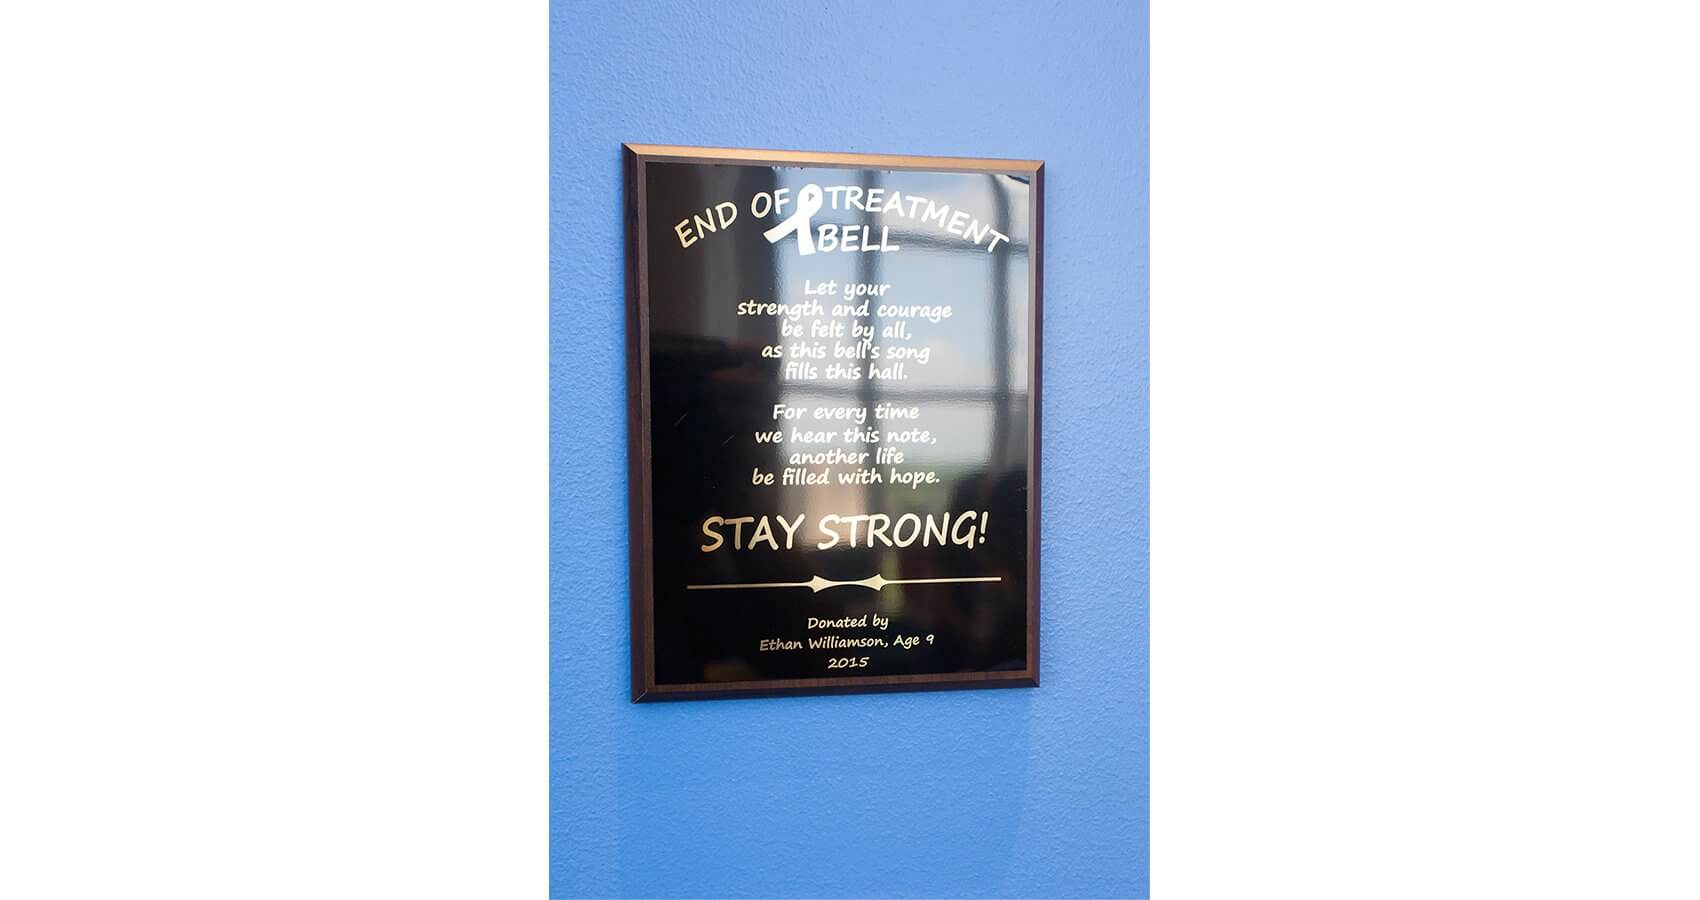 The plaque that hangs next to the end of treatment bell. (Credit: John R. Lewis Photography)